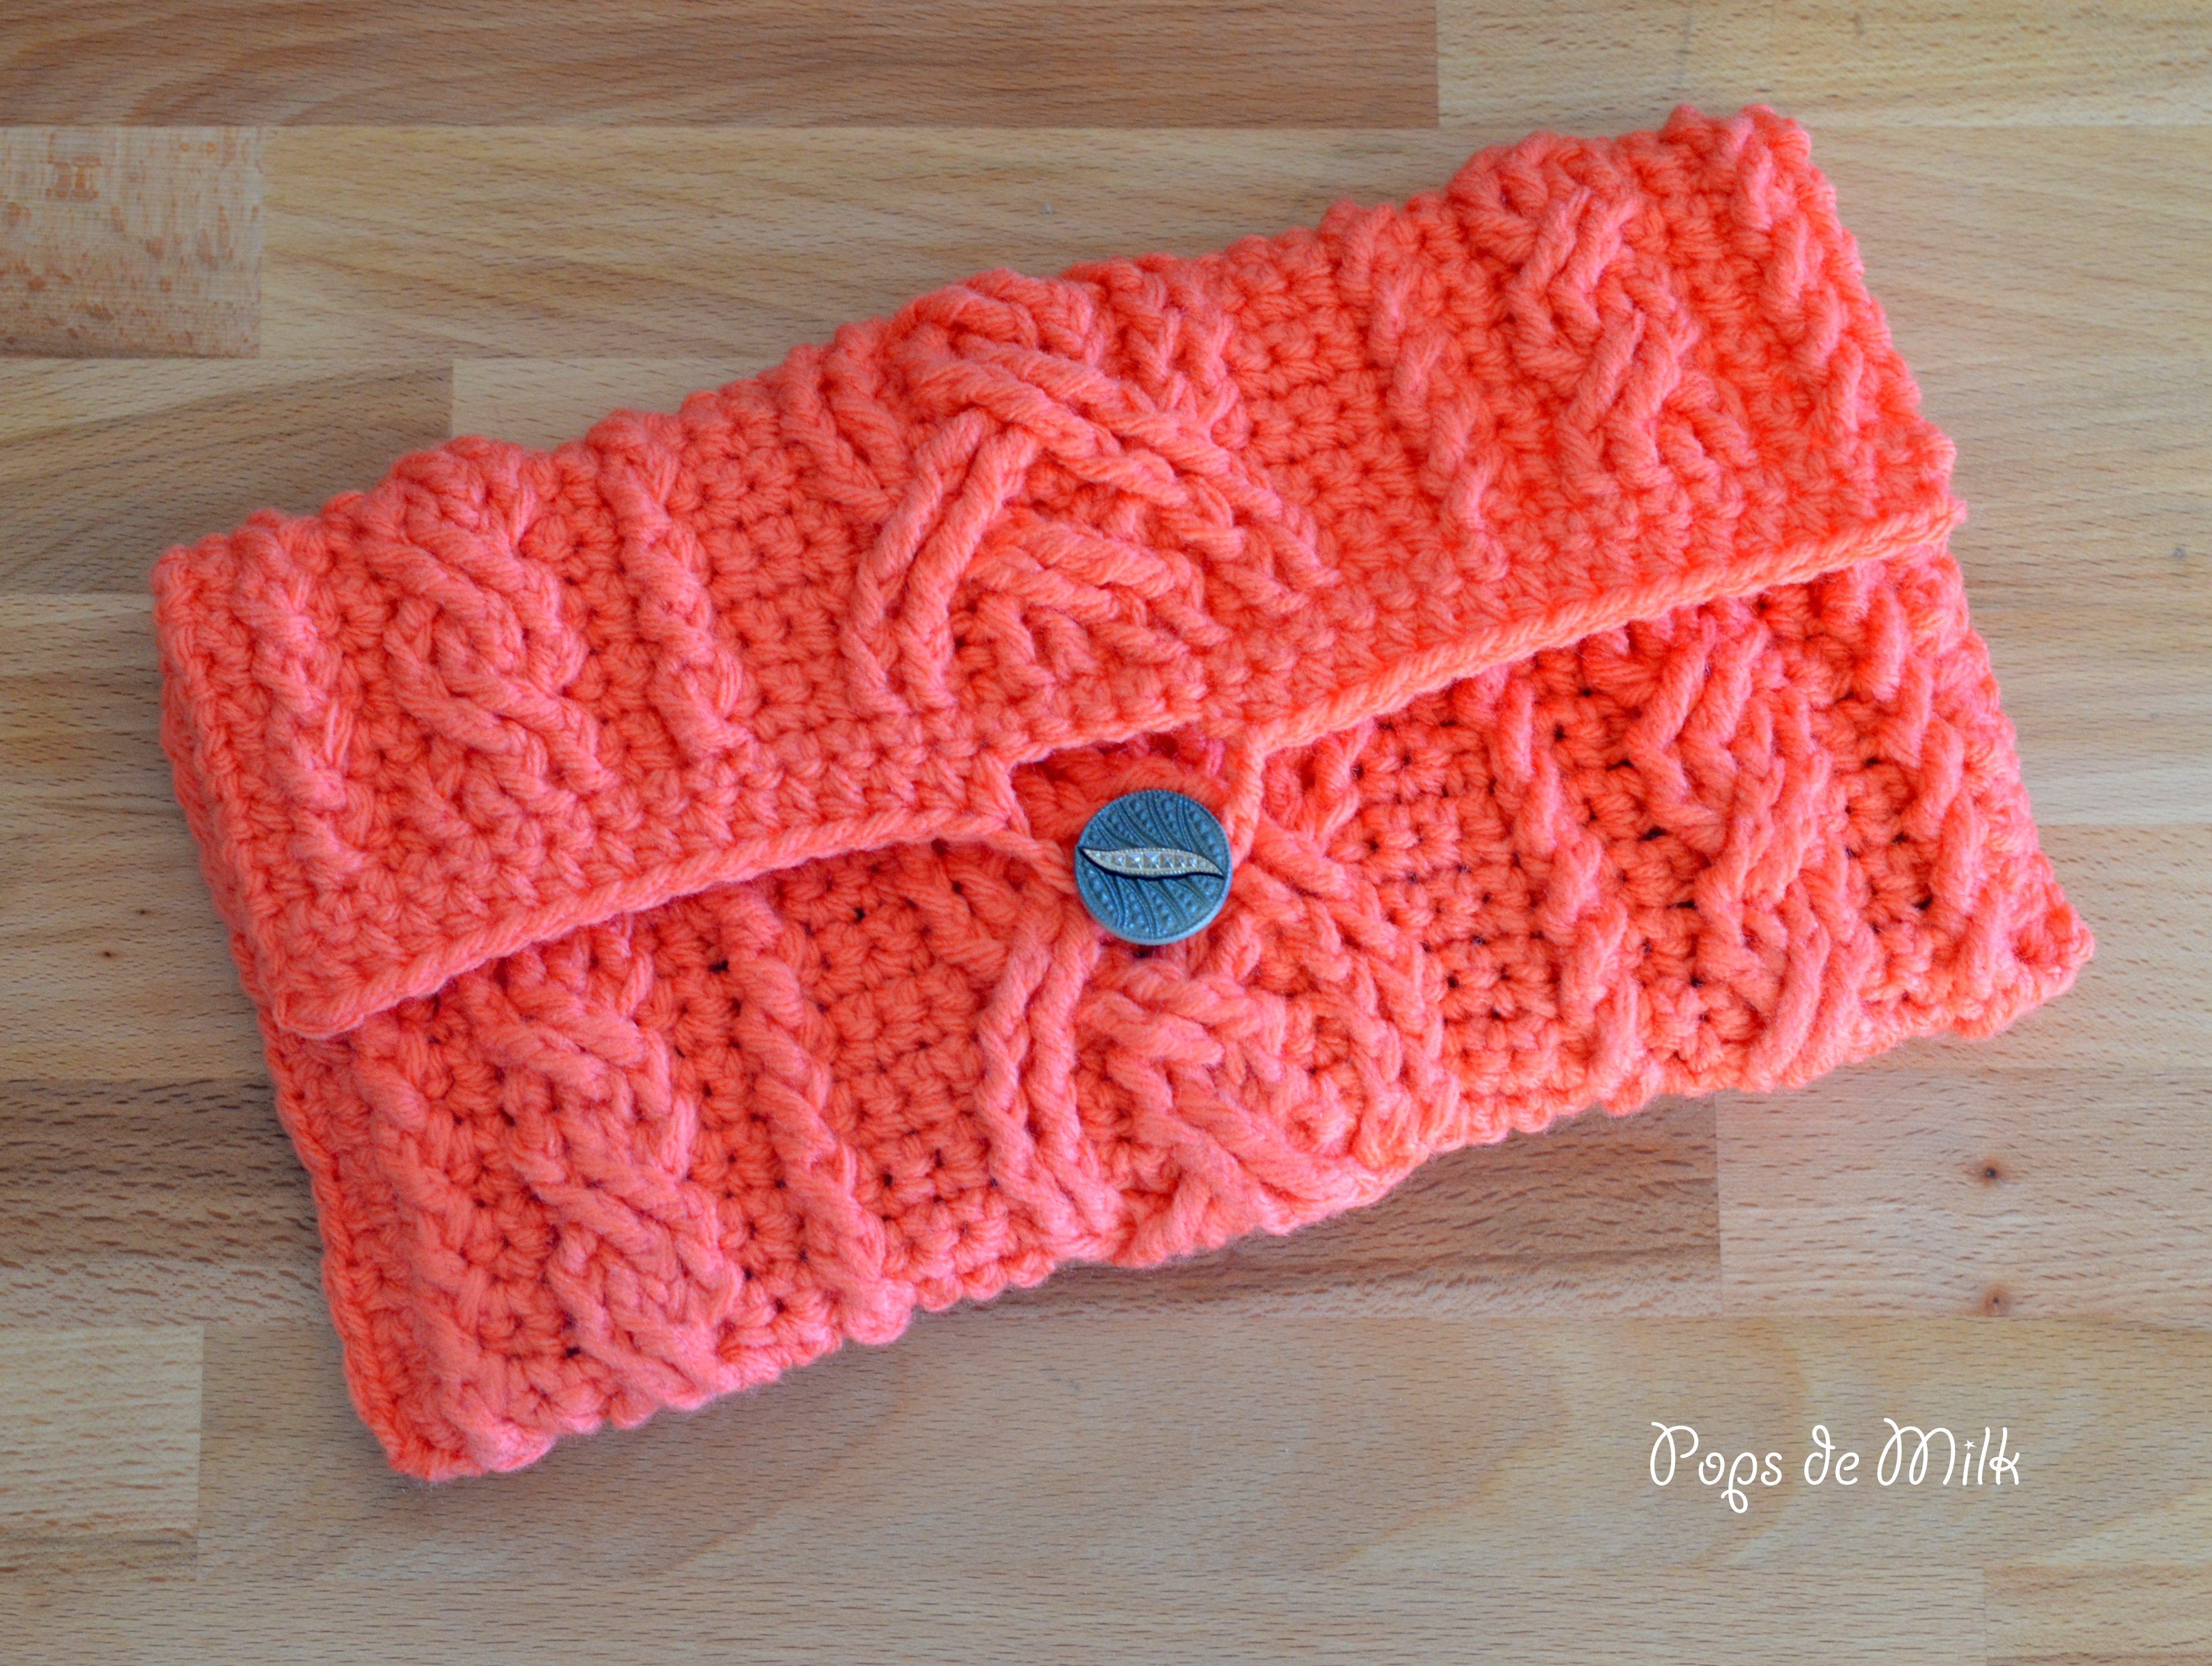 Crochet Cables Clutch Pops de Milk